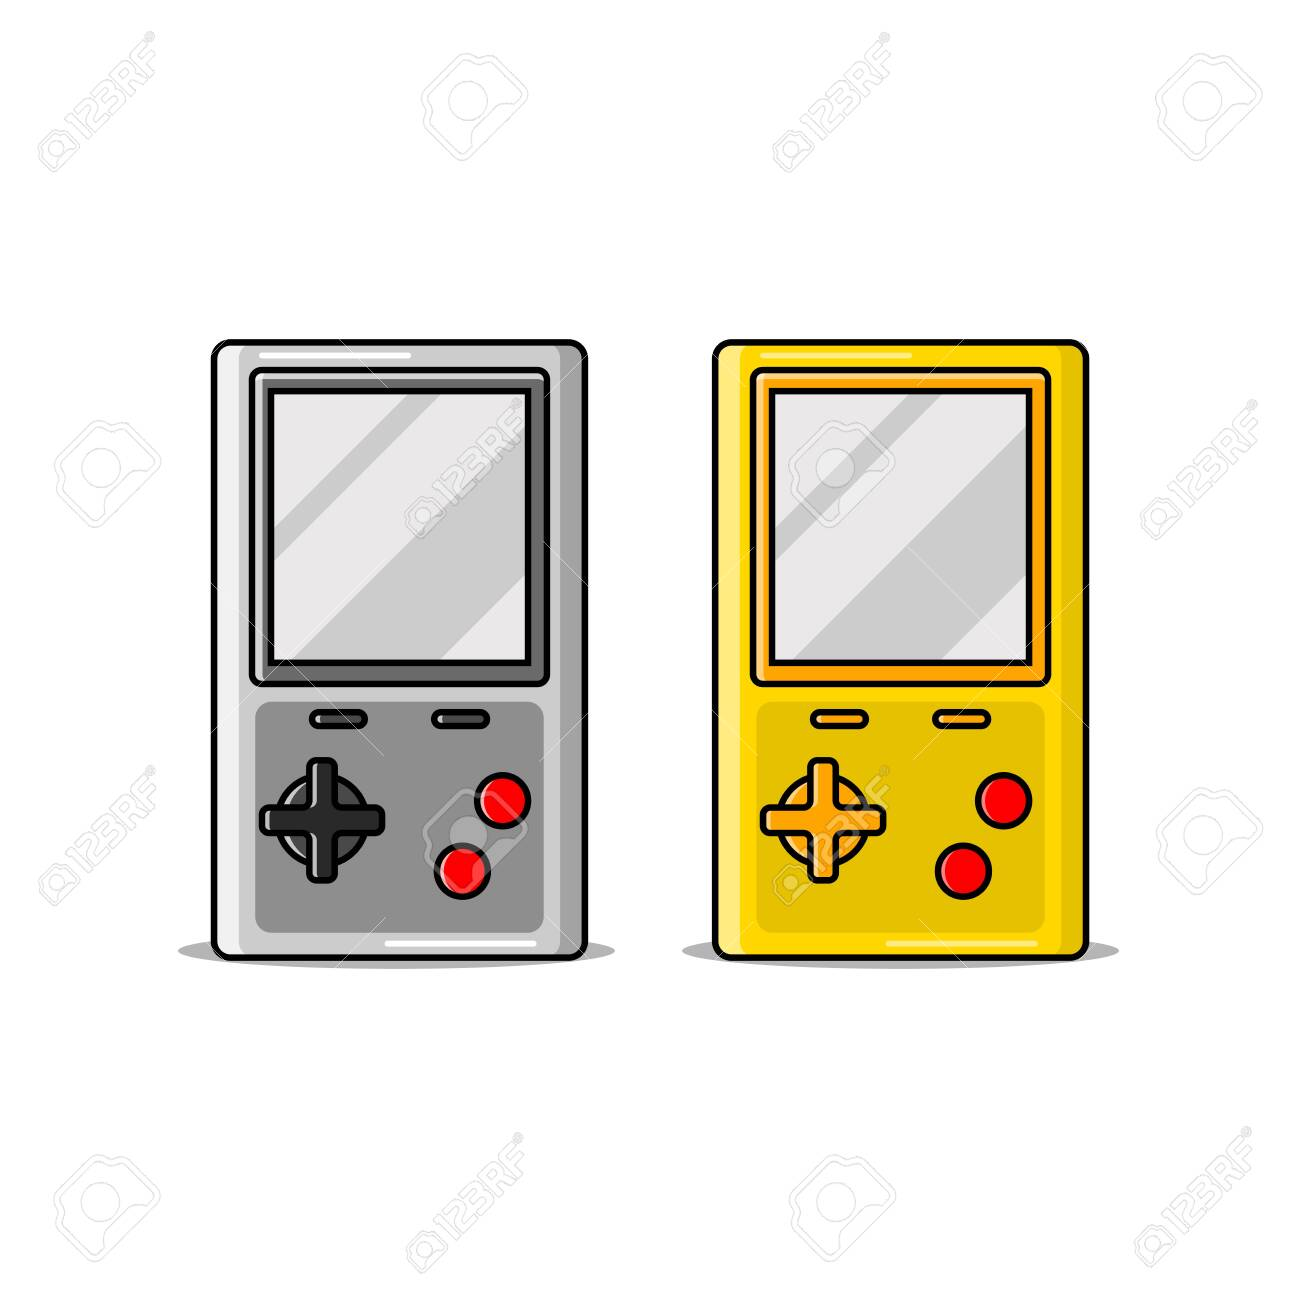 vector illustration of a portable game console - 144441916